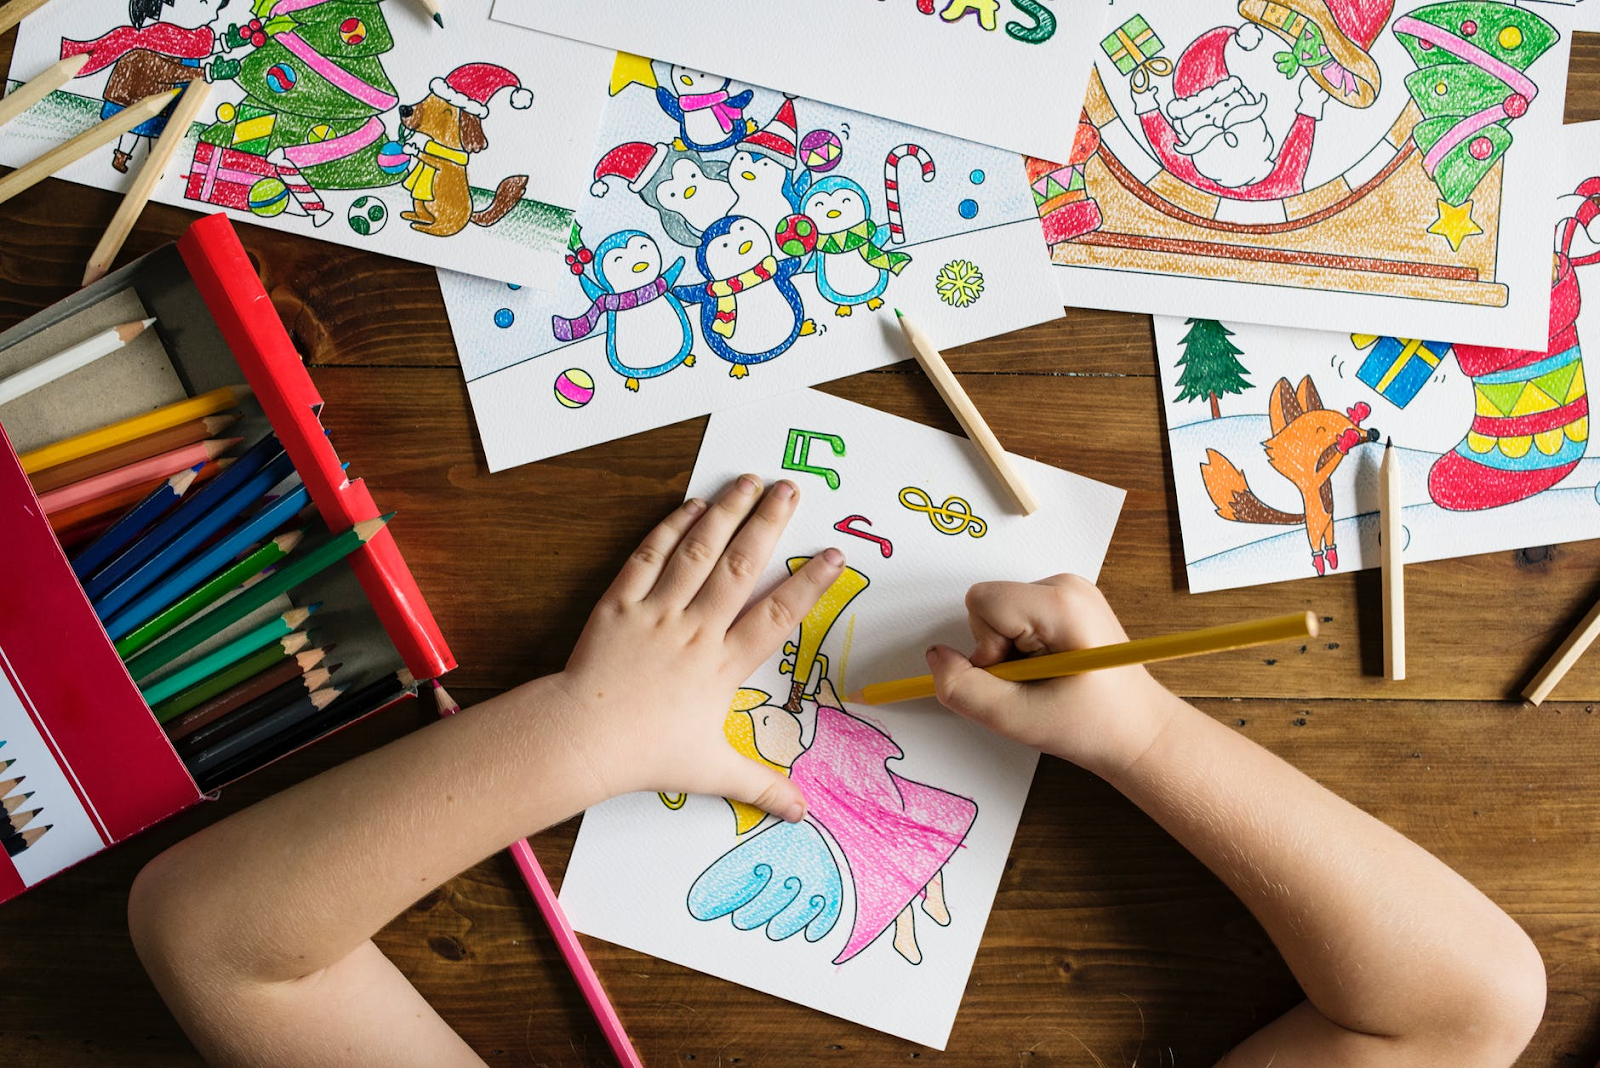 Best Gifts For Children That Aren't Toys